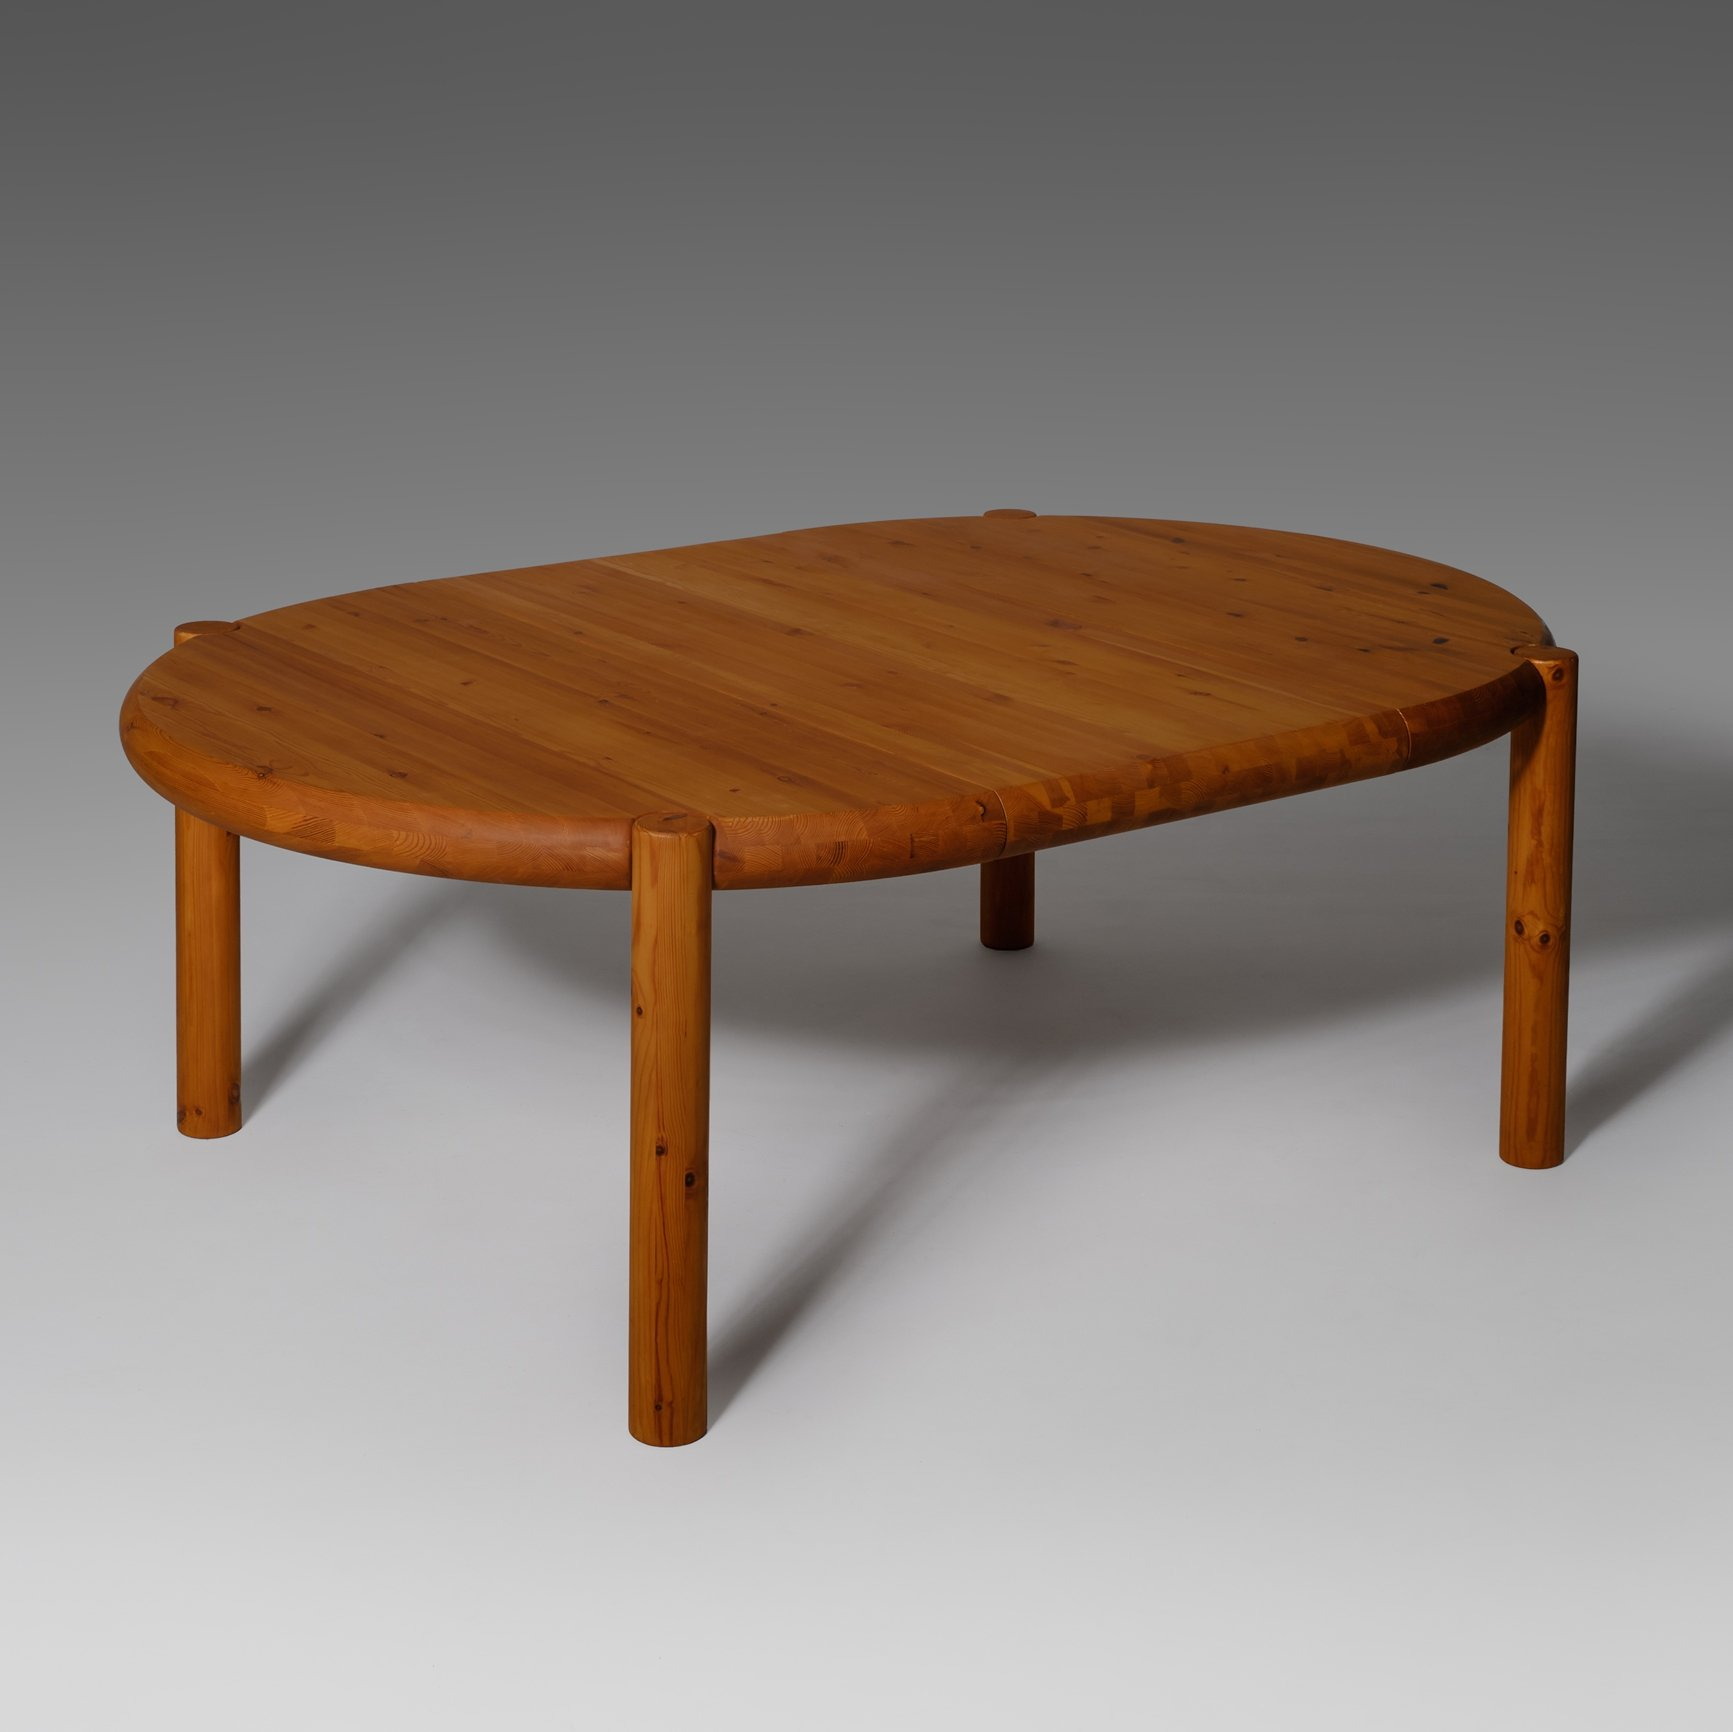 Large Extendable Dining Table In Solid Pine By Rainer Daumiller 151844